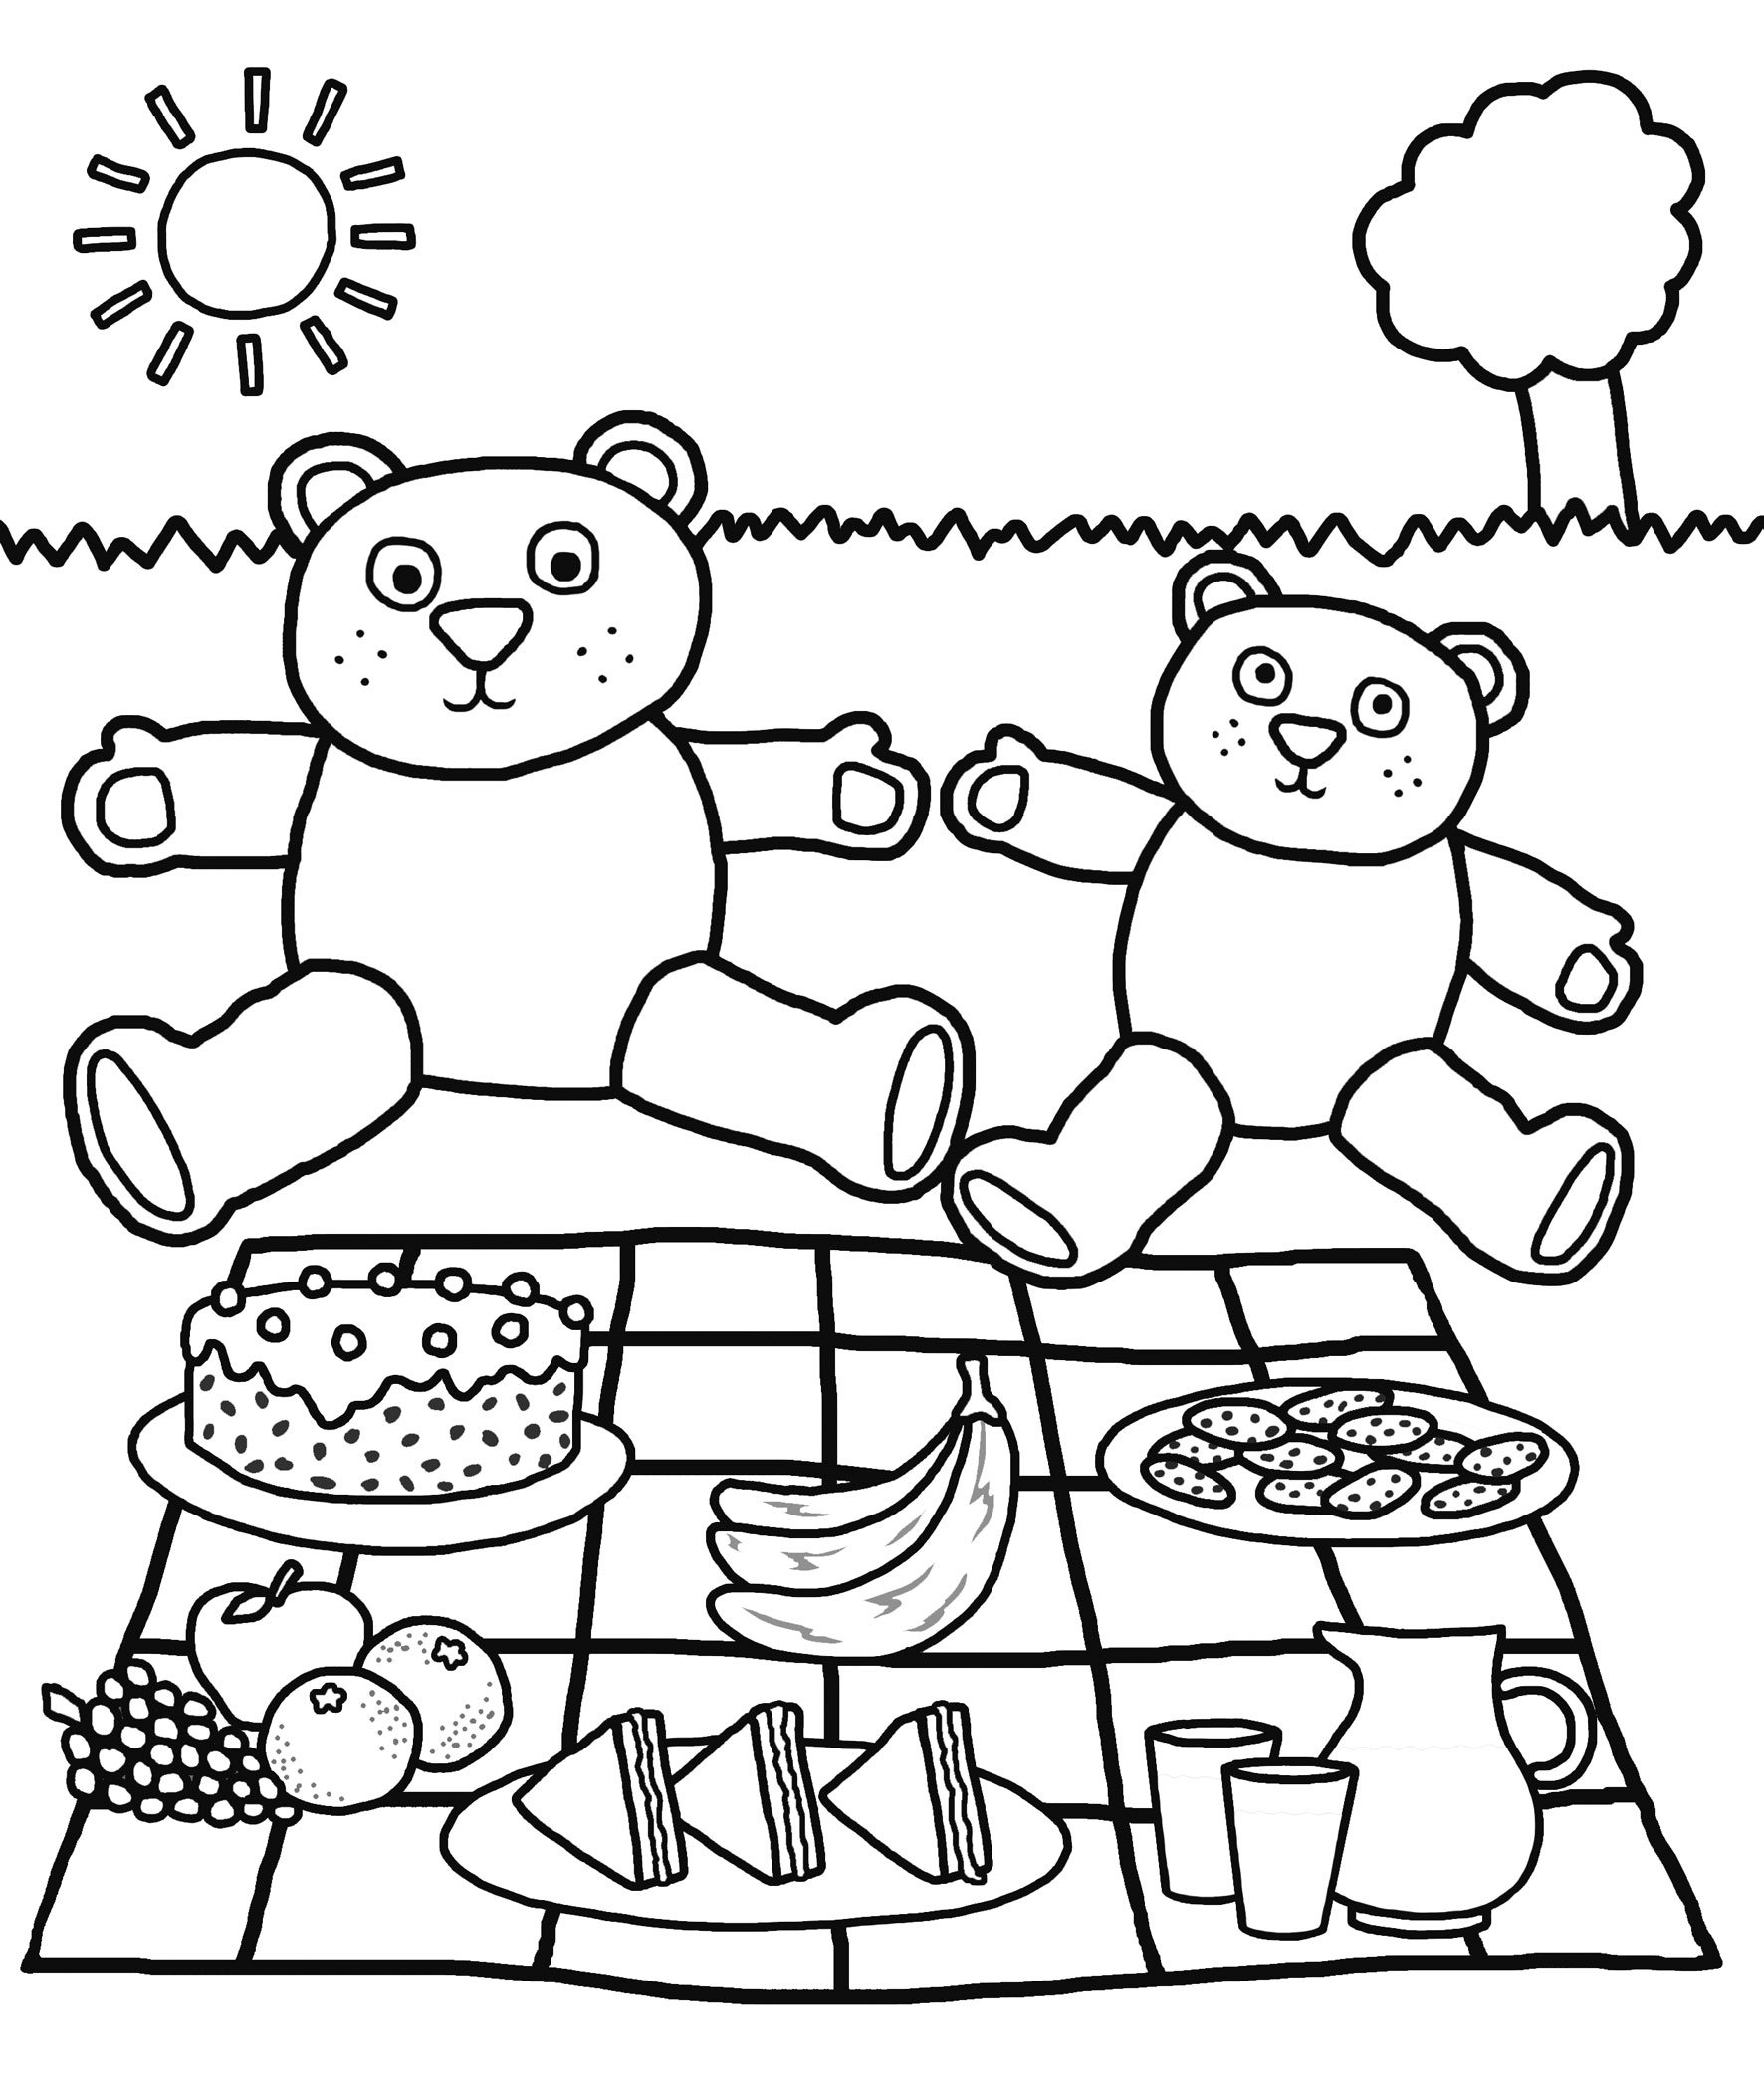 Download and print: Birthday colouring pages - Priddy ...